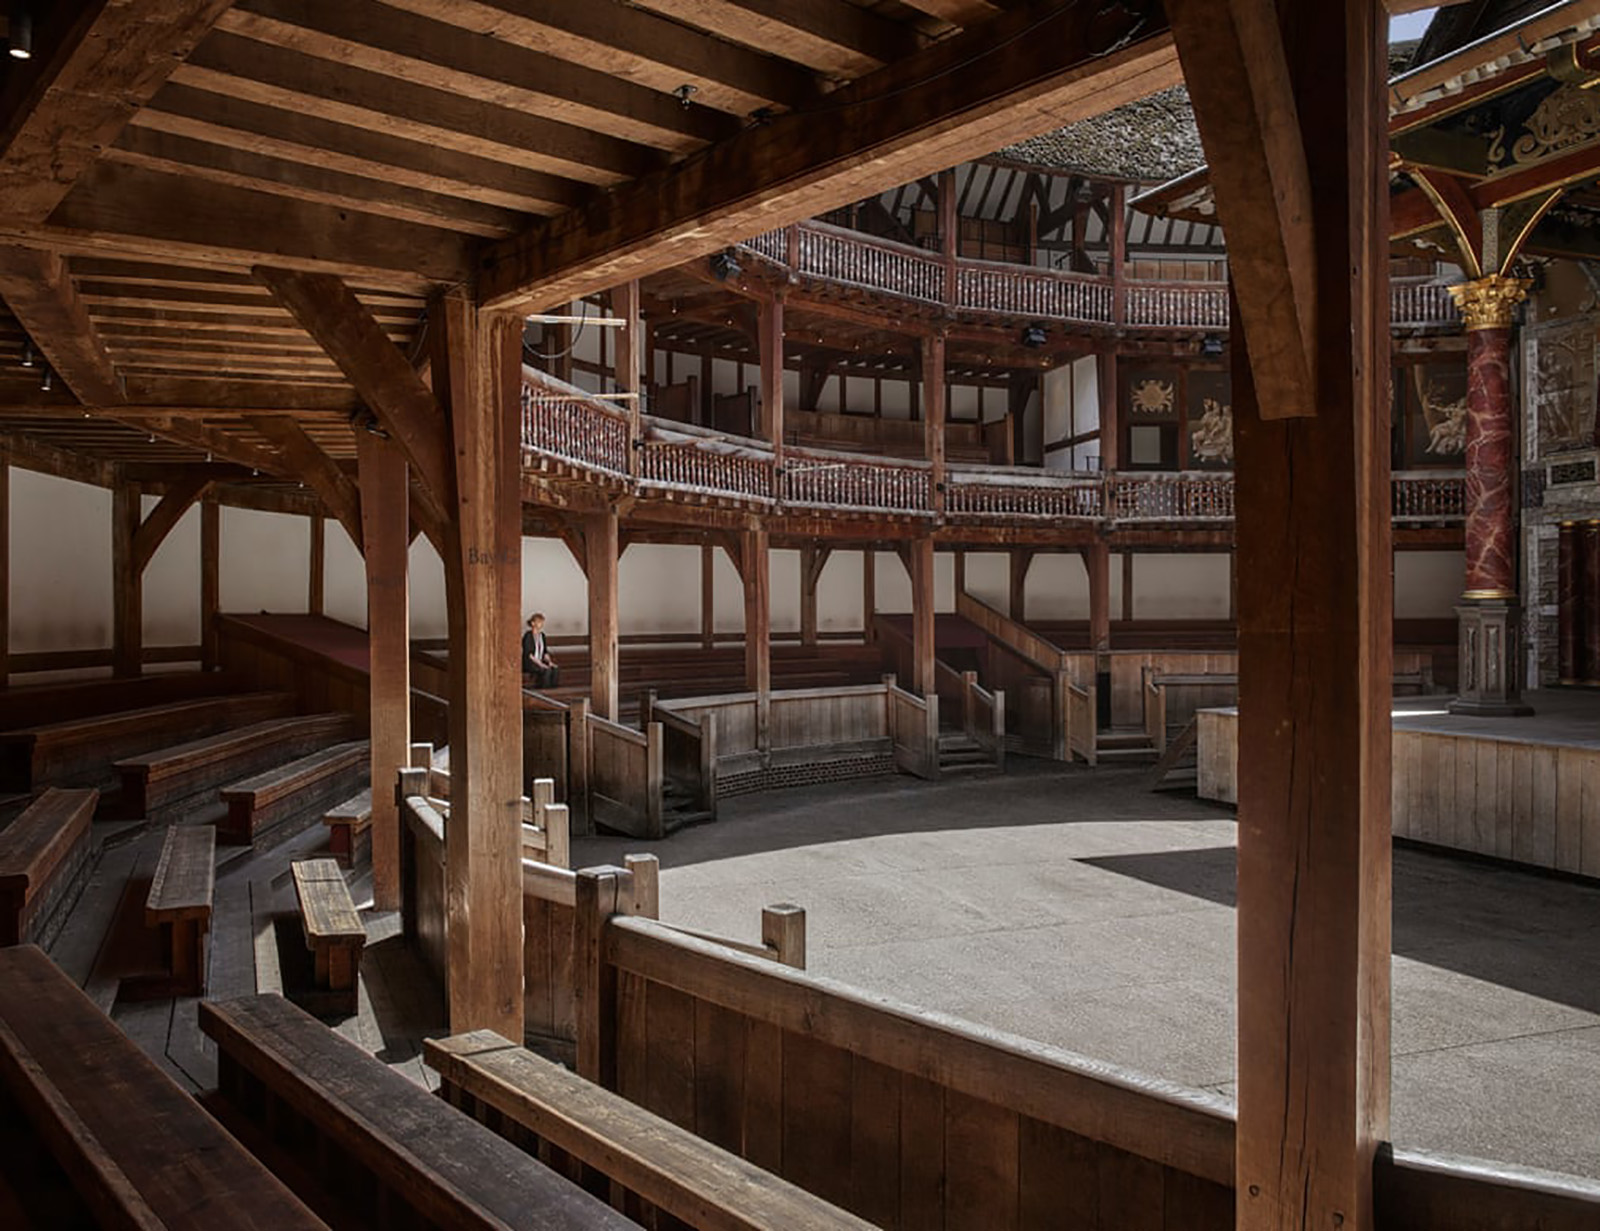 A woman sits in the lower gallery of a circular timber theatre, which lays empty.